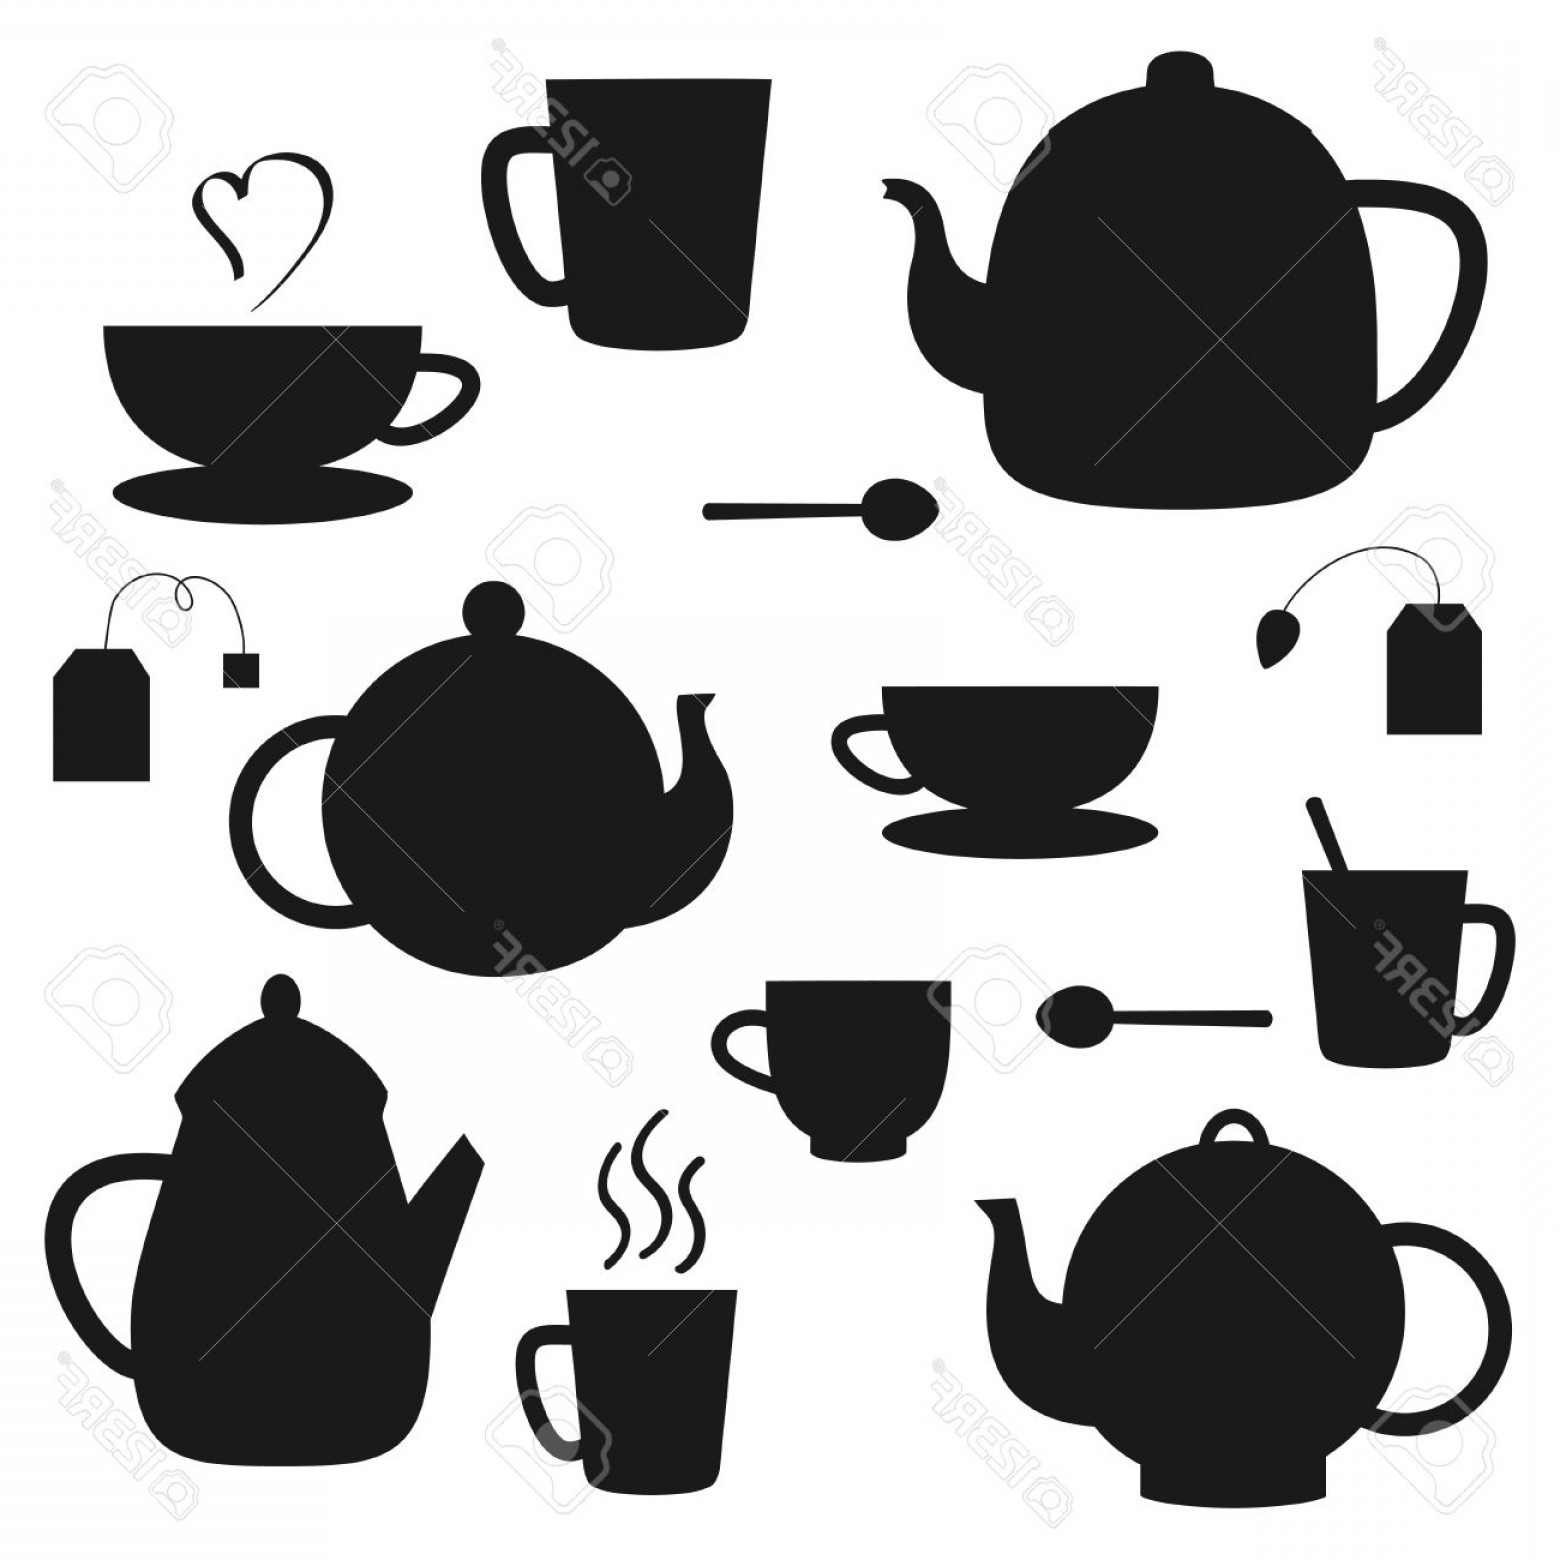 Tea Set Vector: Photostock Vector Vector Set Of Black Tea Pots And Cups Silhouettes